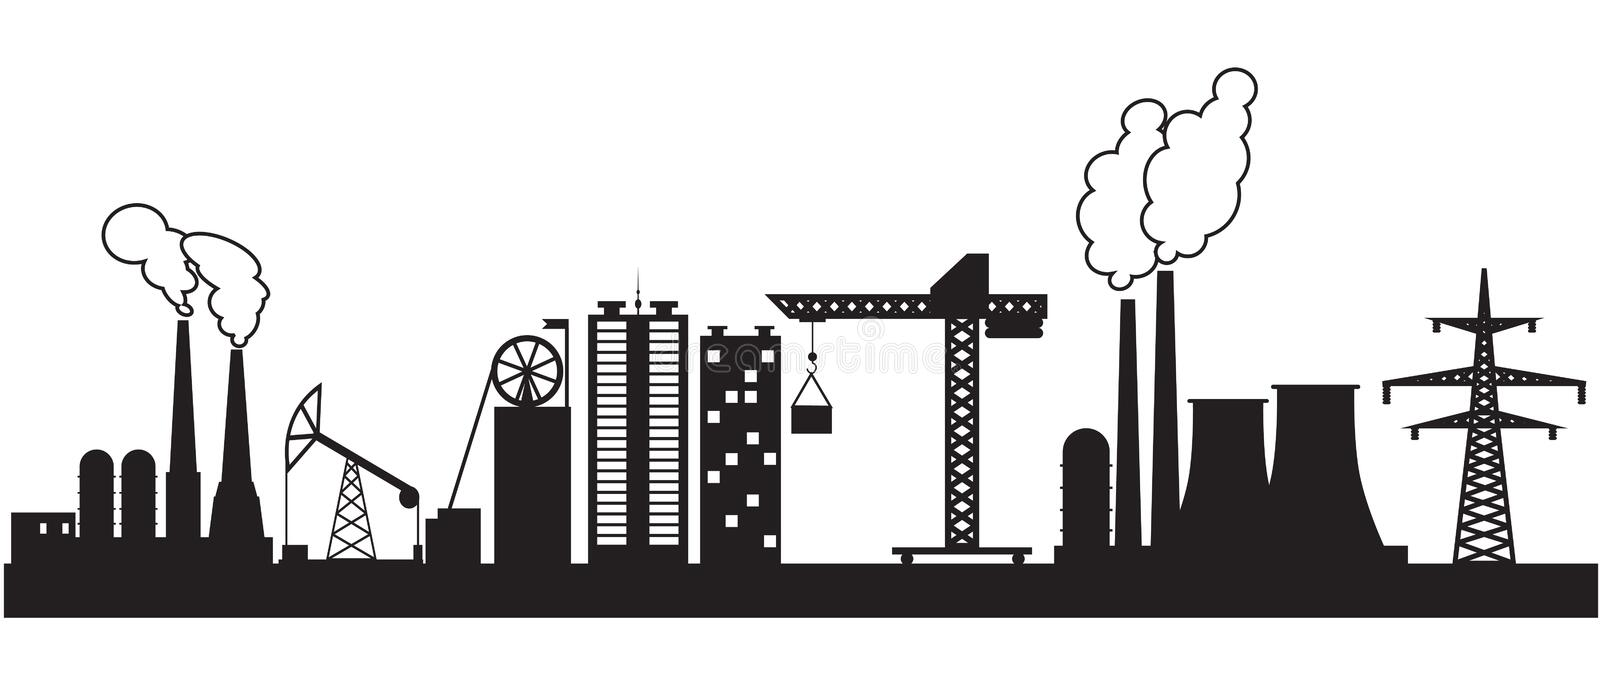 Eight urban and industrial buildings vector illustration